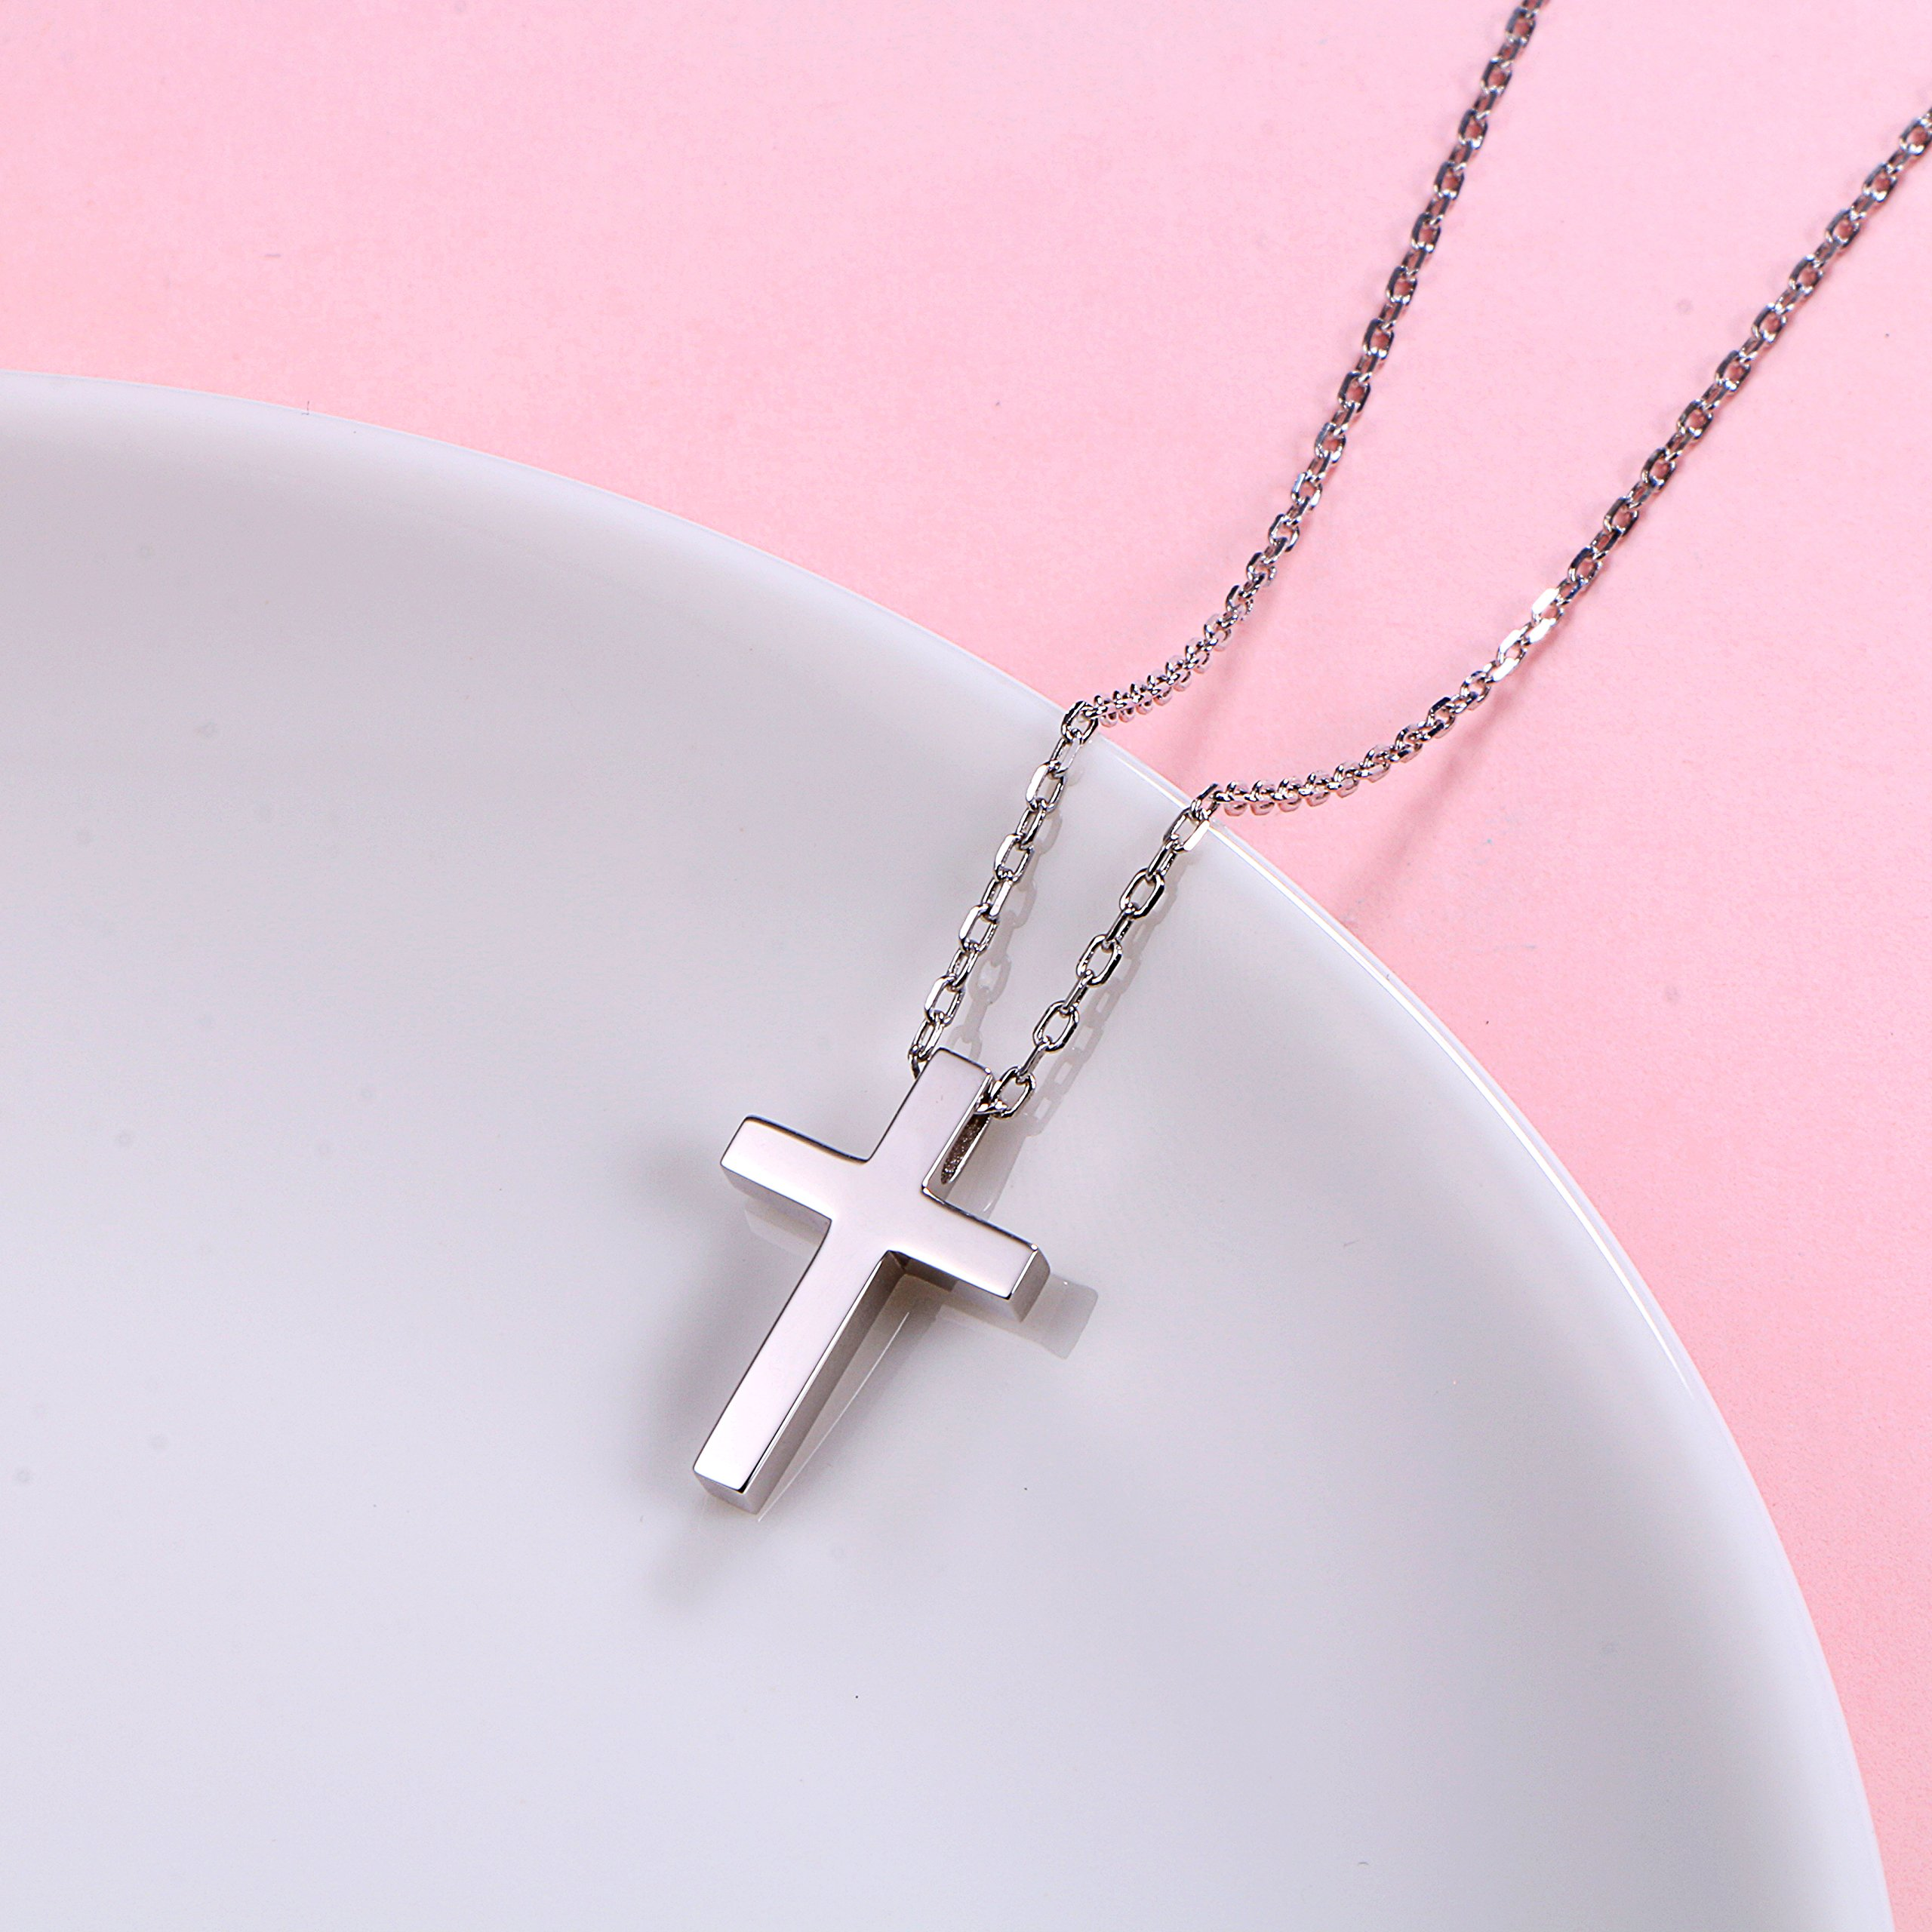 ALPHM S925 Sterling Silver Small Cross Pendant Necklace for Children Girl Baby boy 16'' Chain by ALPHM (Image #4)